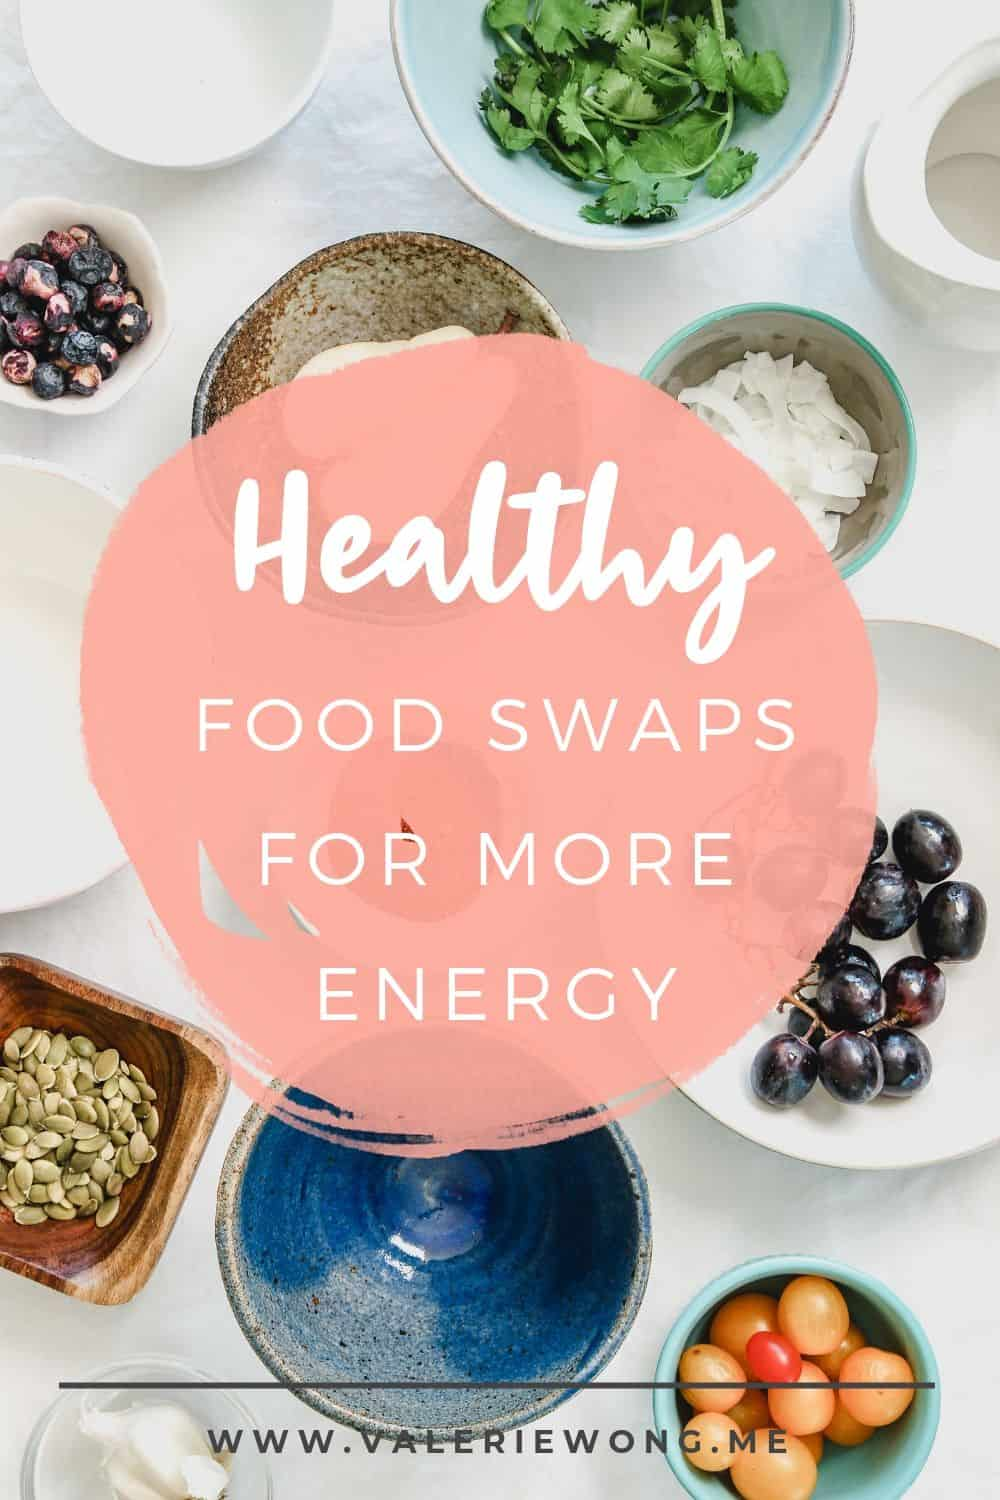 Healthy food swaps for more energy | If you need more energy throughout the day, clean eating is a great place to start. In this post, I'll help you clean up your diet with a pantry & fridge makeover! Learn which foods need to go and how to replace them with healthier alternatives. Click to read the post + get your free healthy food swaps checklist to make the process super easy! | Valerie Wong Wellness #valeriewong #healthyfoodwaps #cleaneating #healthyeating #wellnesstips via @valeriewonglifecoach